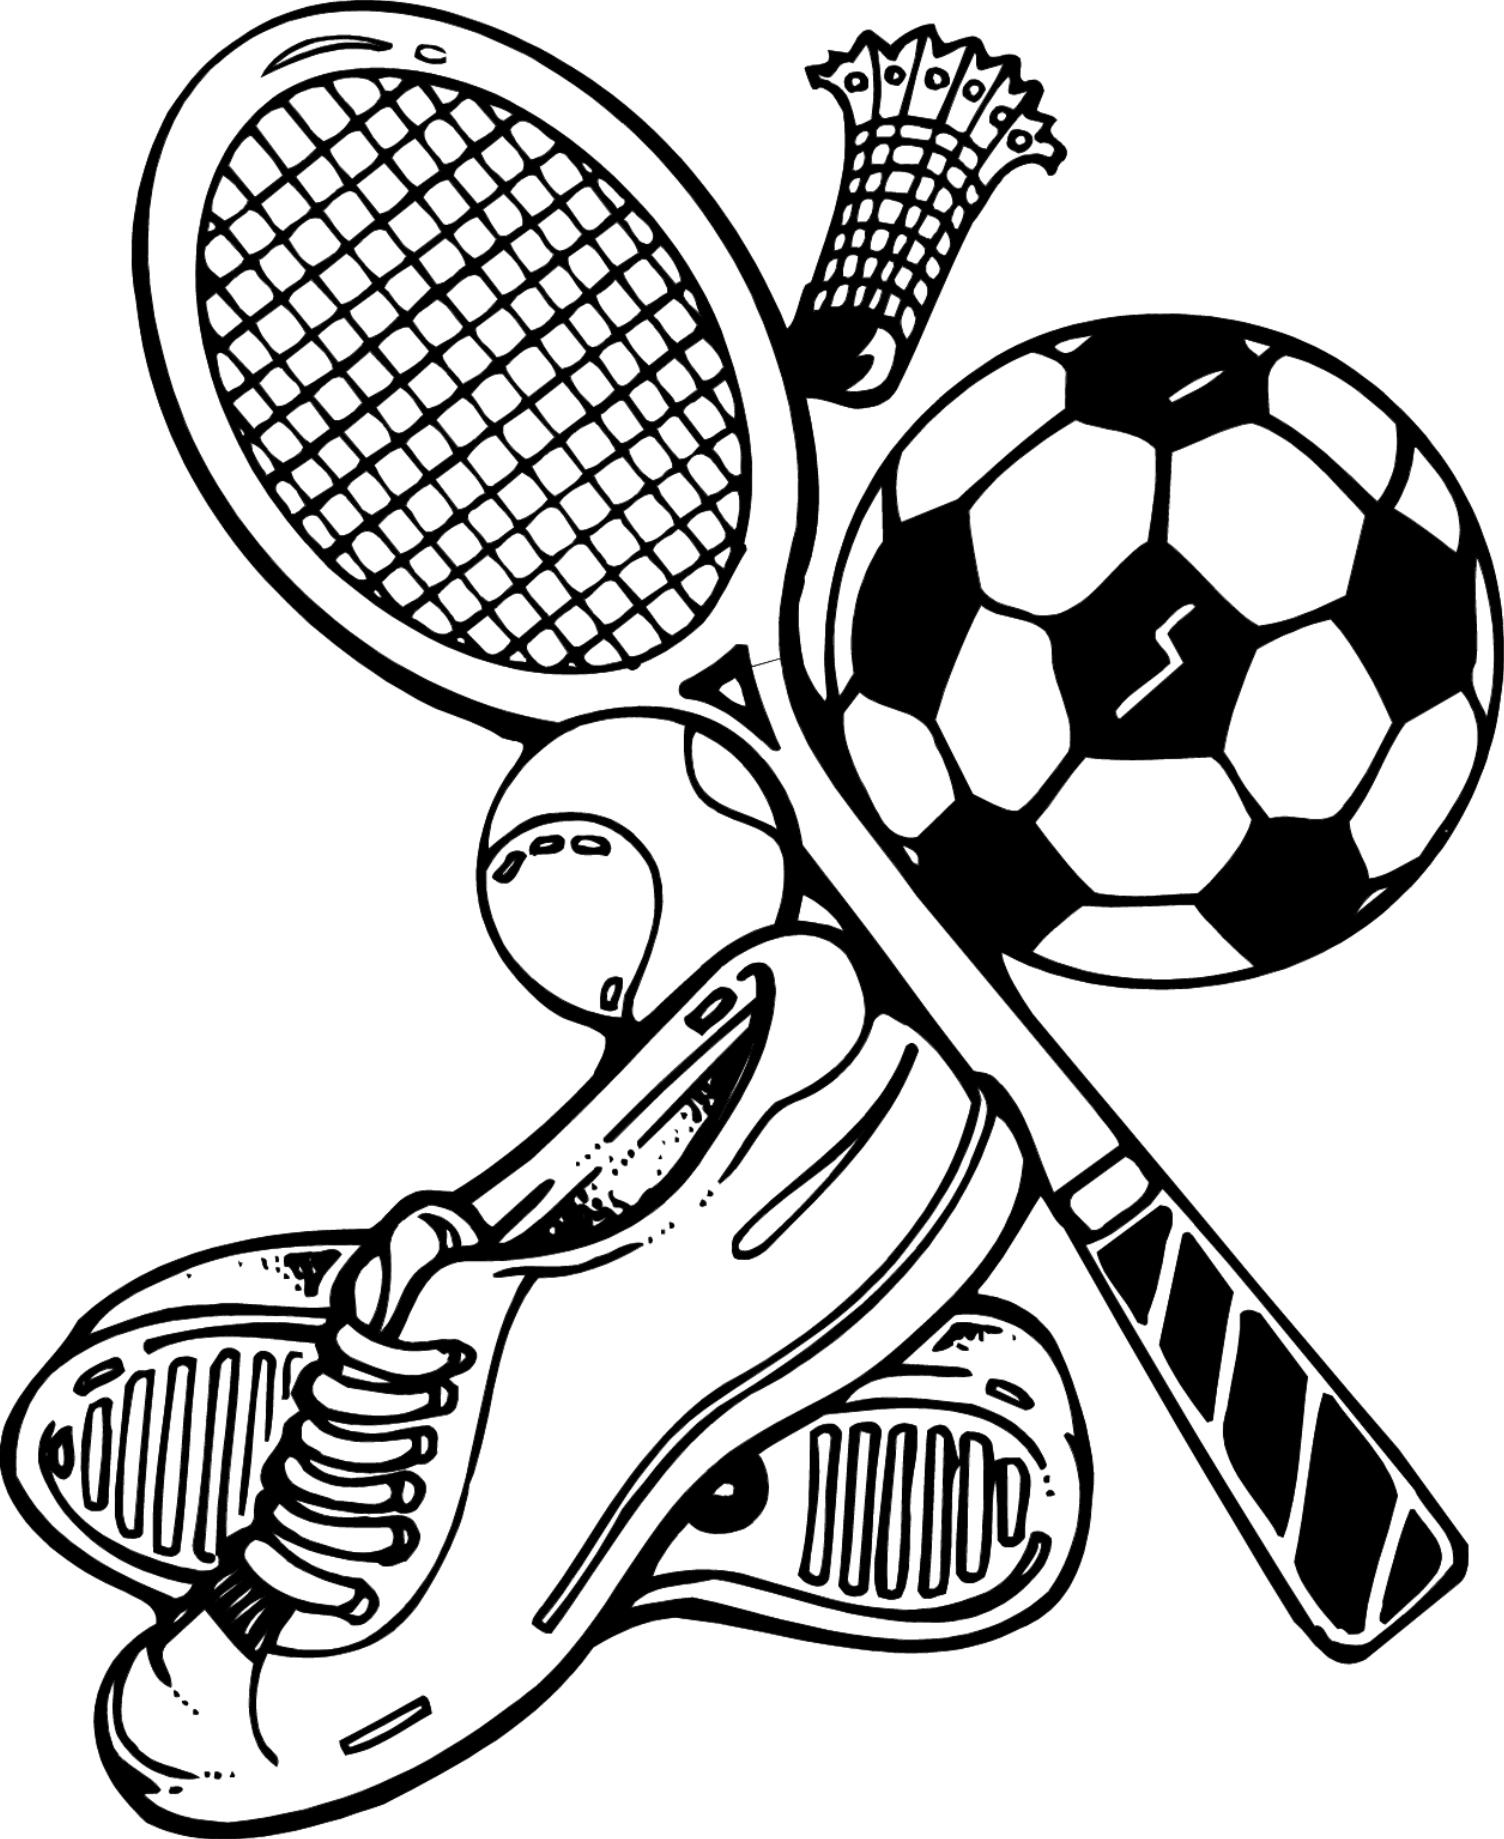 Free Images Of Sports Equipment, Download Free Clip Art.